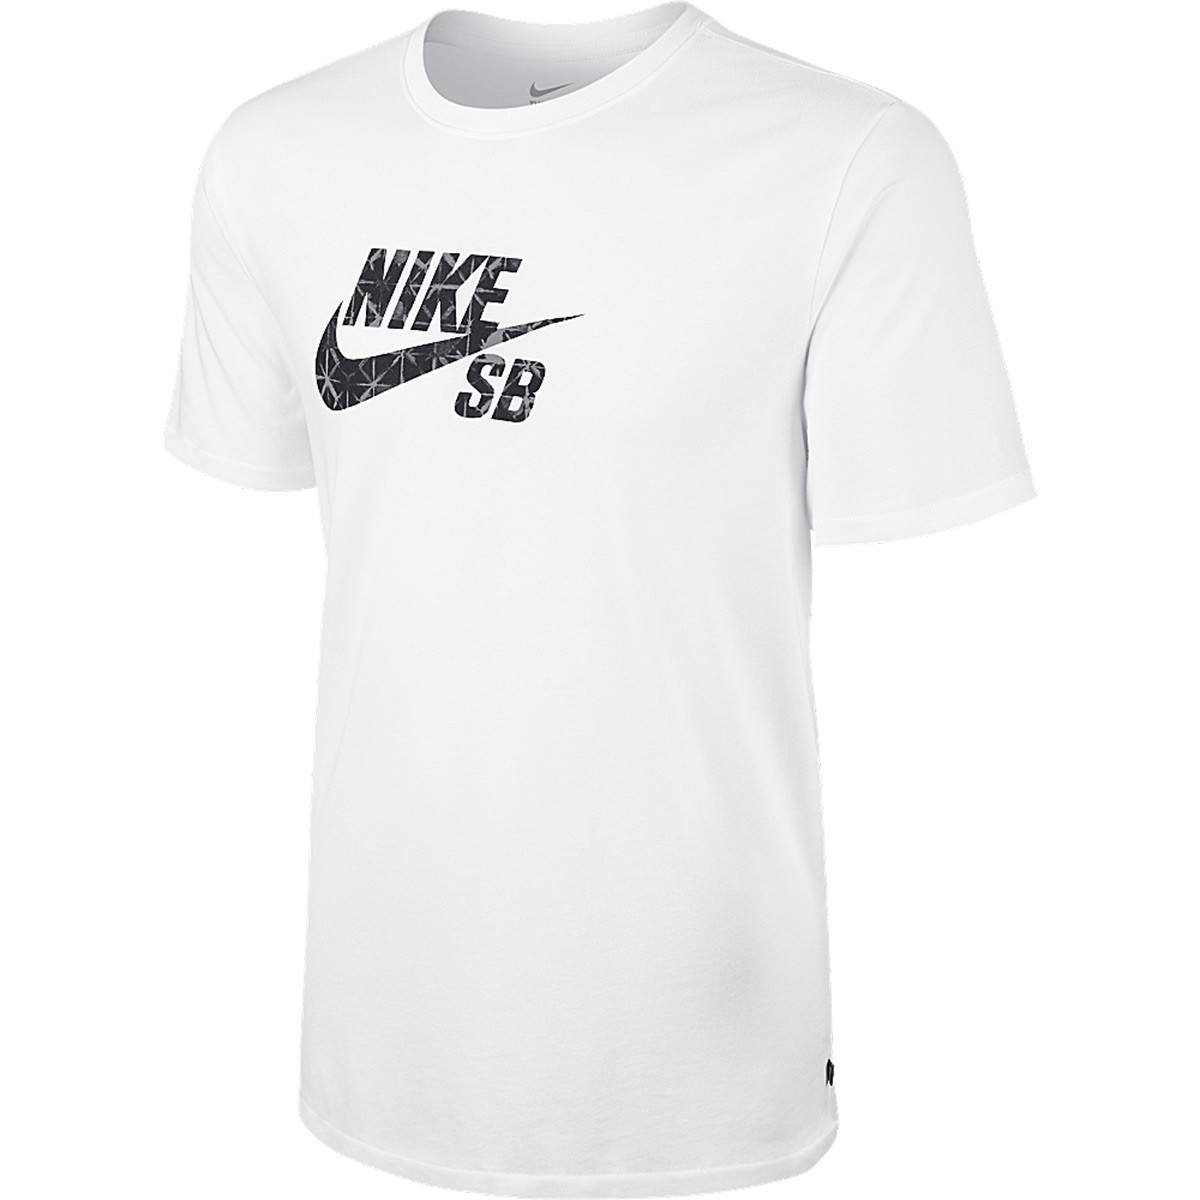 """""""We're Going To Go Get Some Fresh Air!"""" [Private, Pockeh] Nike-geo-dye-icon-t-shirt-white_4.1464294064"""